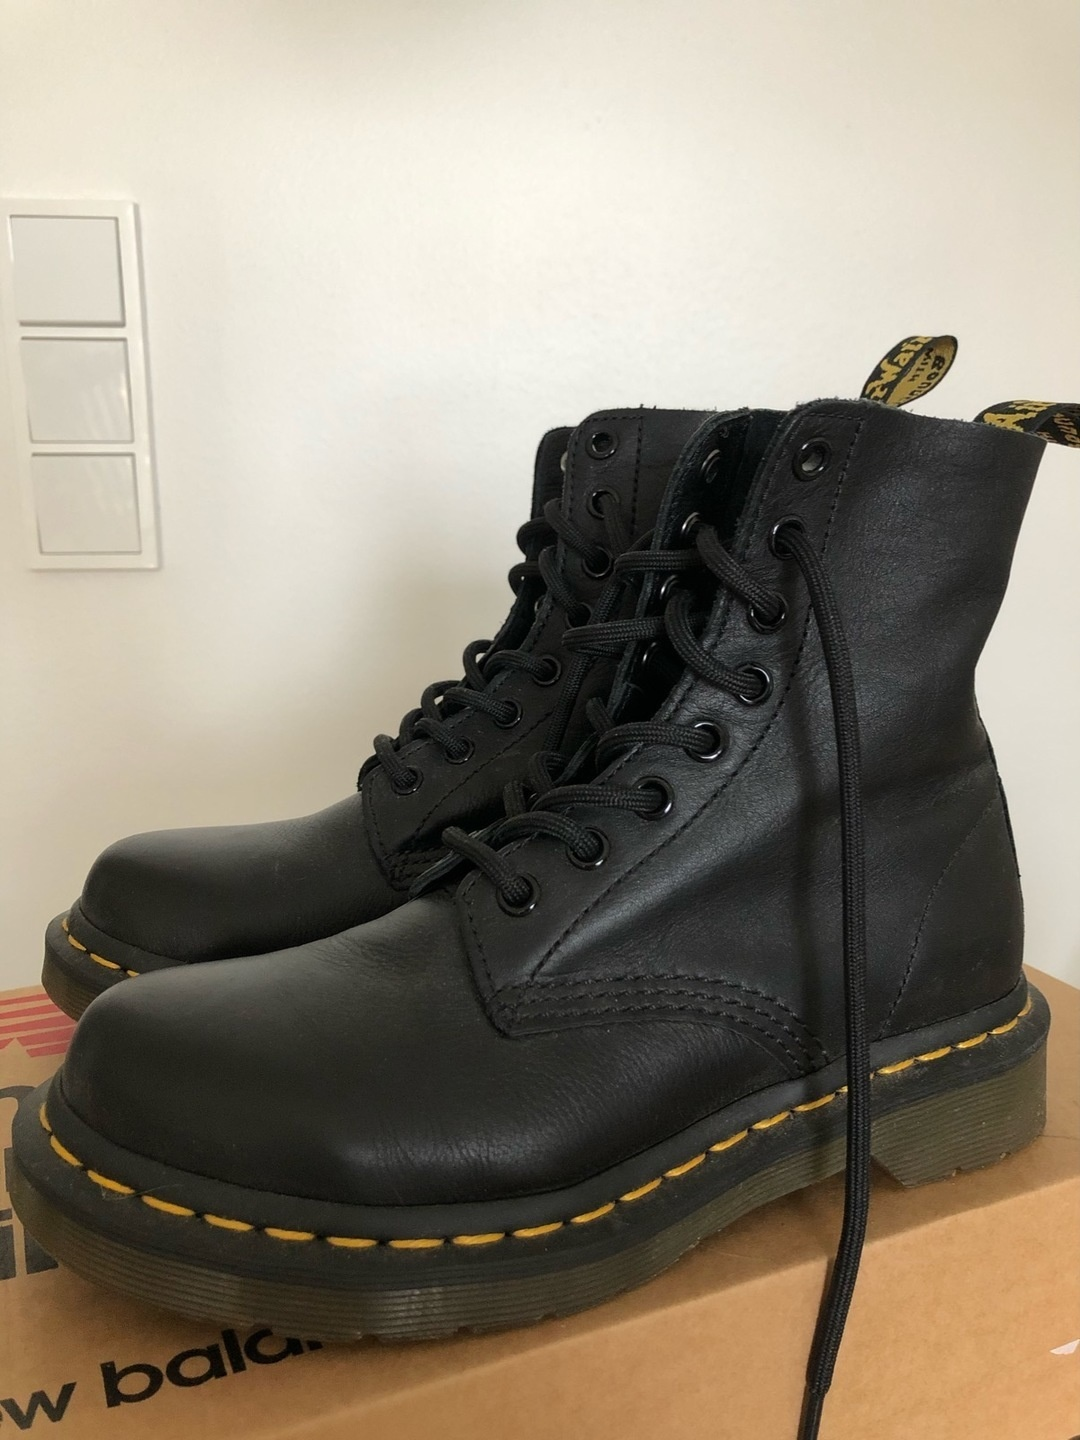 Women's boots - DR. MARTENS photo 2